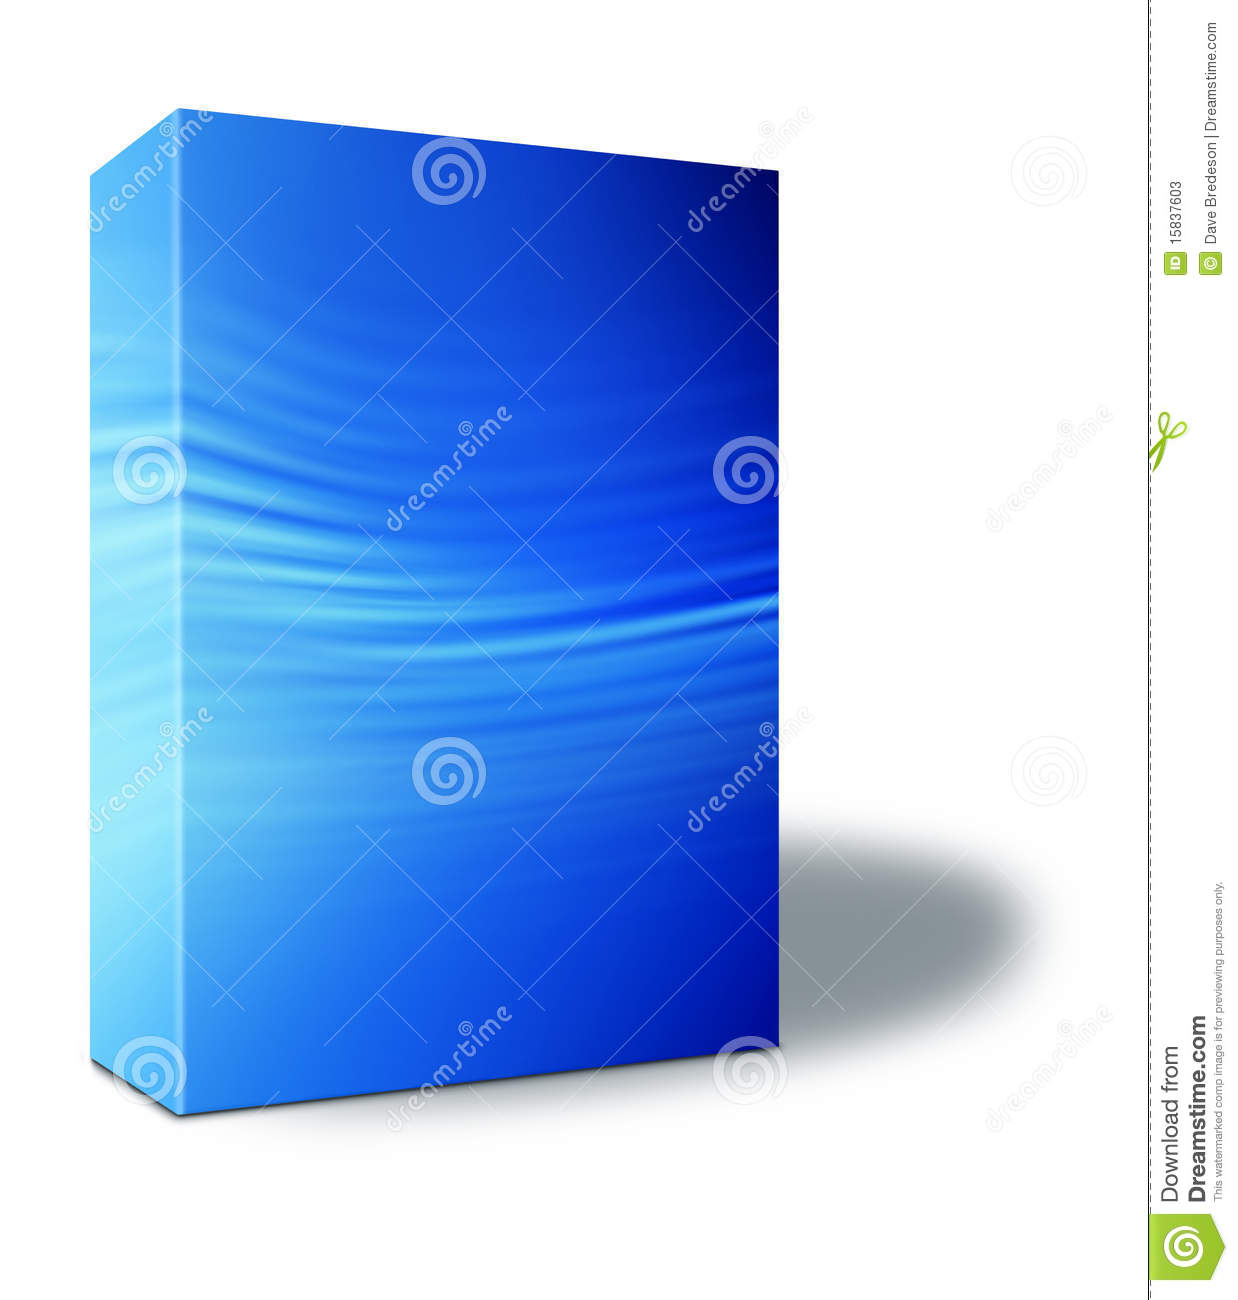 Blue Product Box